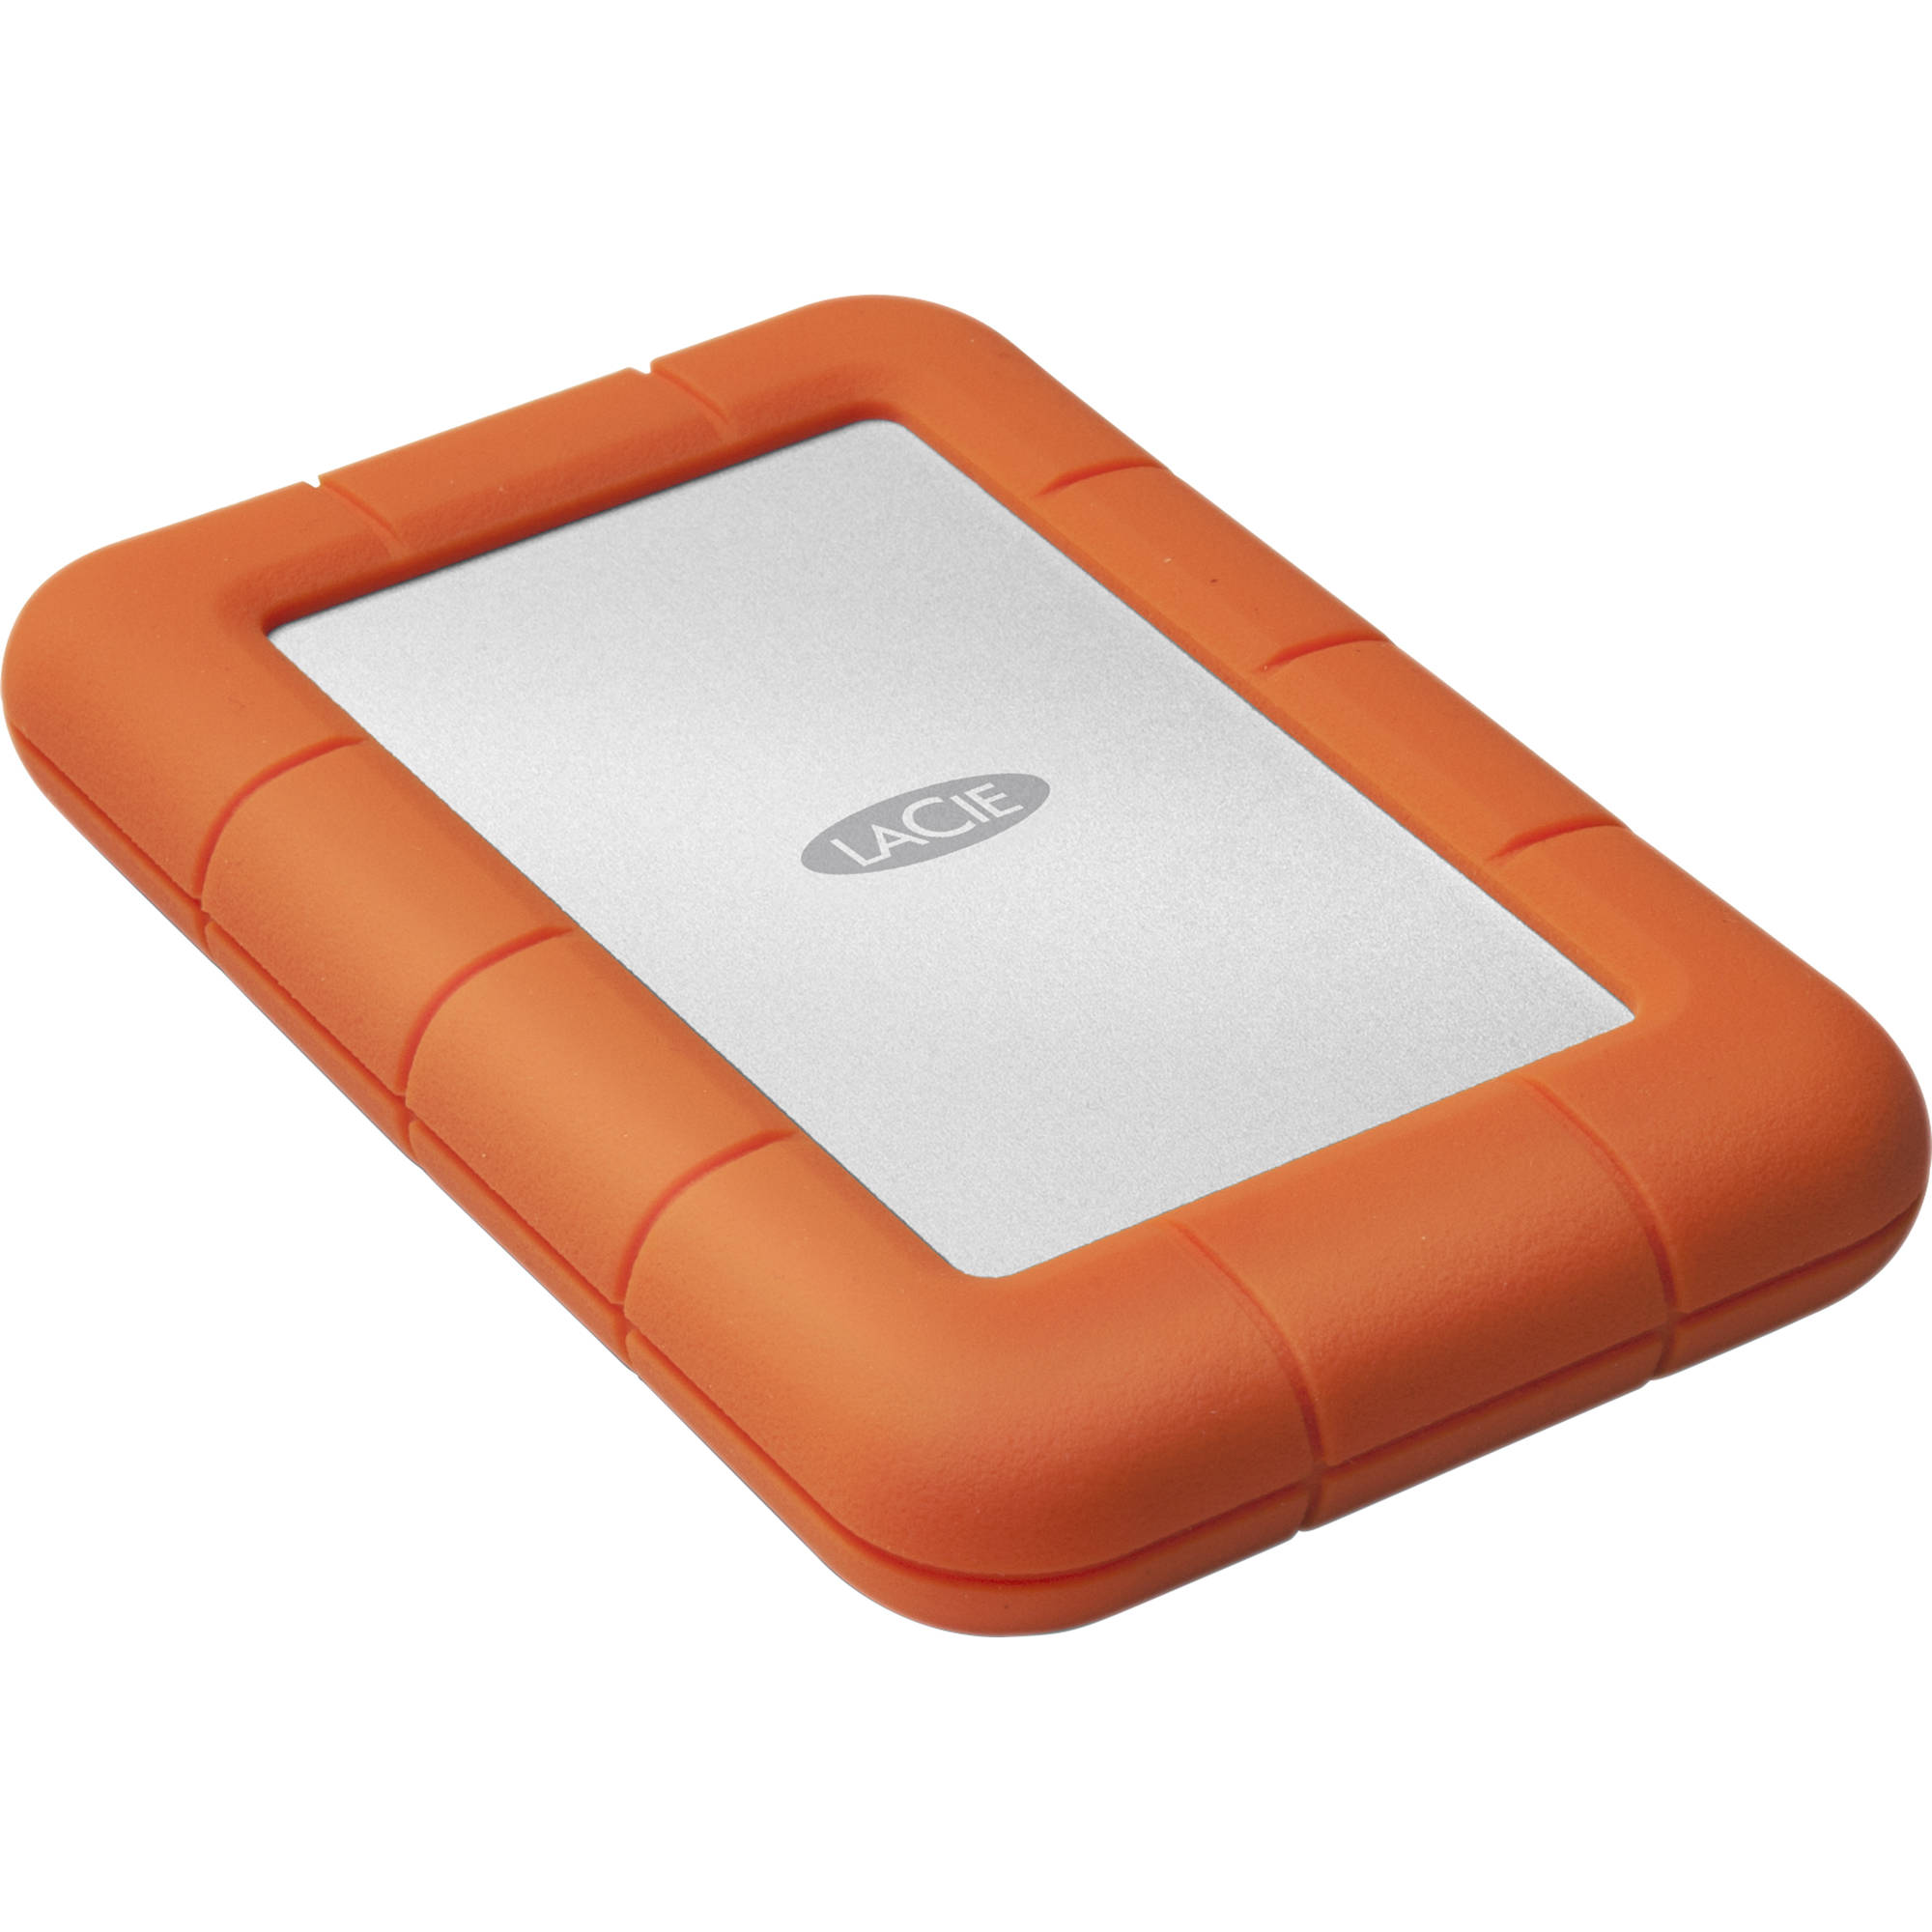 lacie 4tb rugged mini portable hard drive lac9000633 b h photo rh bhphotovideo com lacie wireless hard drive manual lacie rugged external hard drive manual